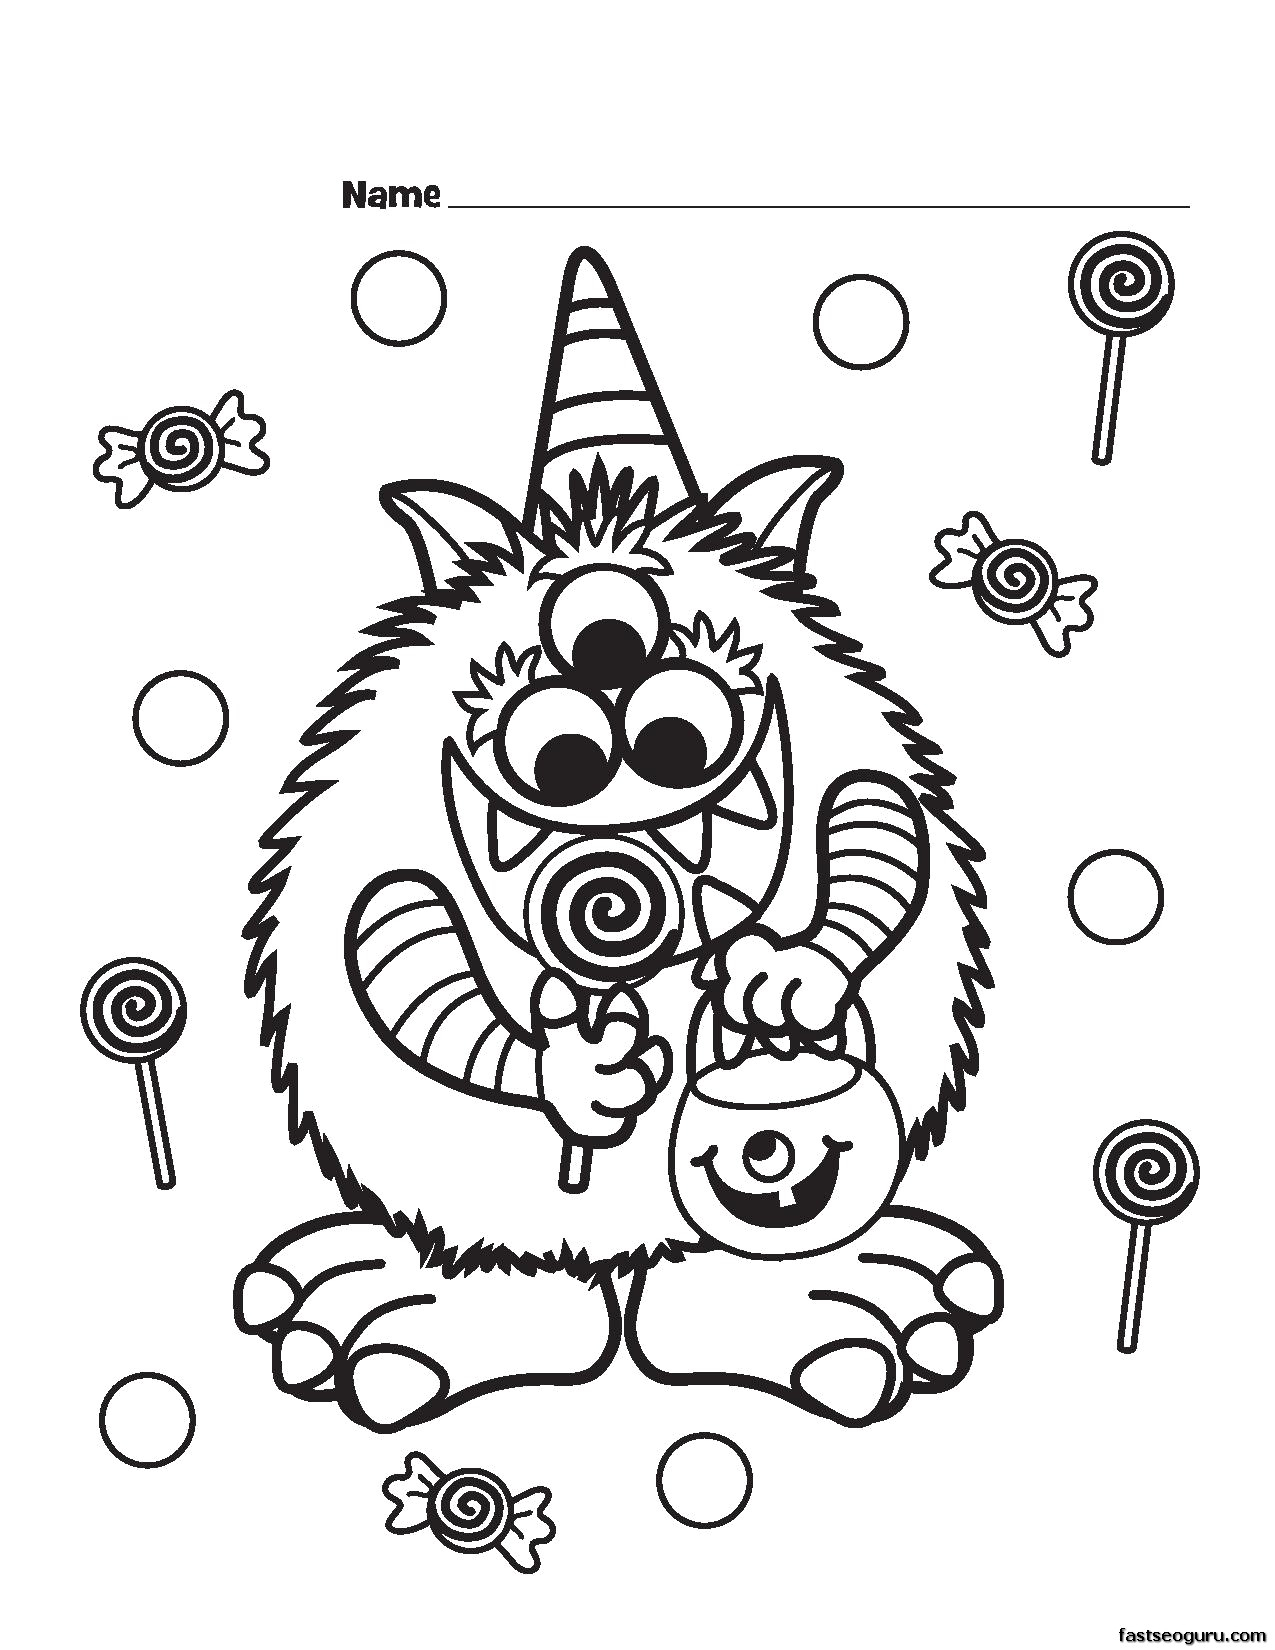 Cute Halloween Coloring Pages Cute Halloween Coloring Pages For Kids Thanhhoacar